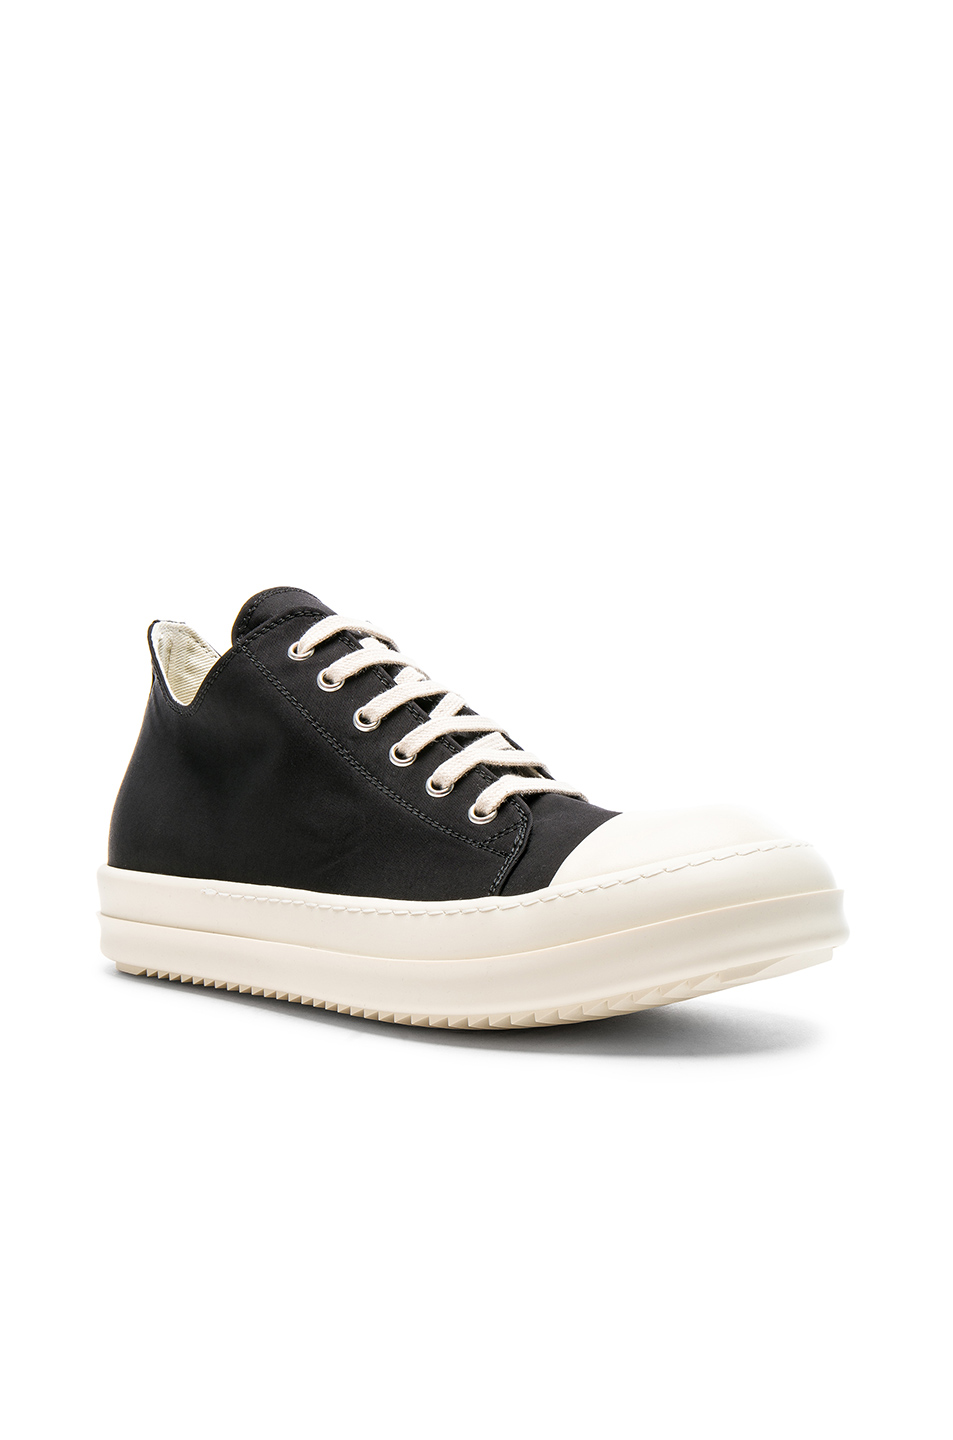 DRKSHDW by Rick Owens Scarpe Low Sneakers in Black